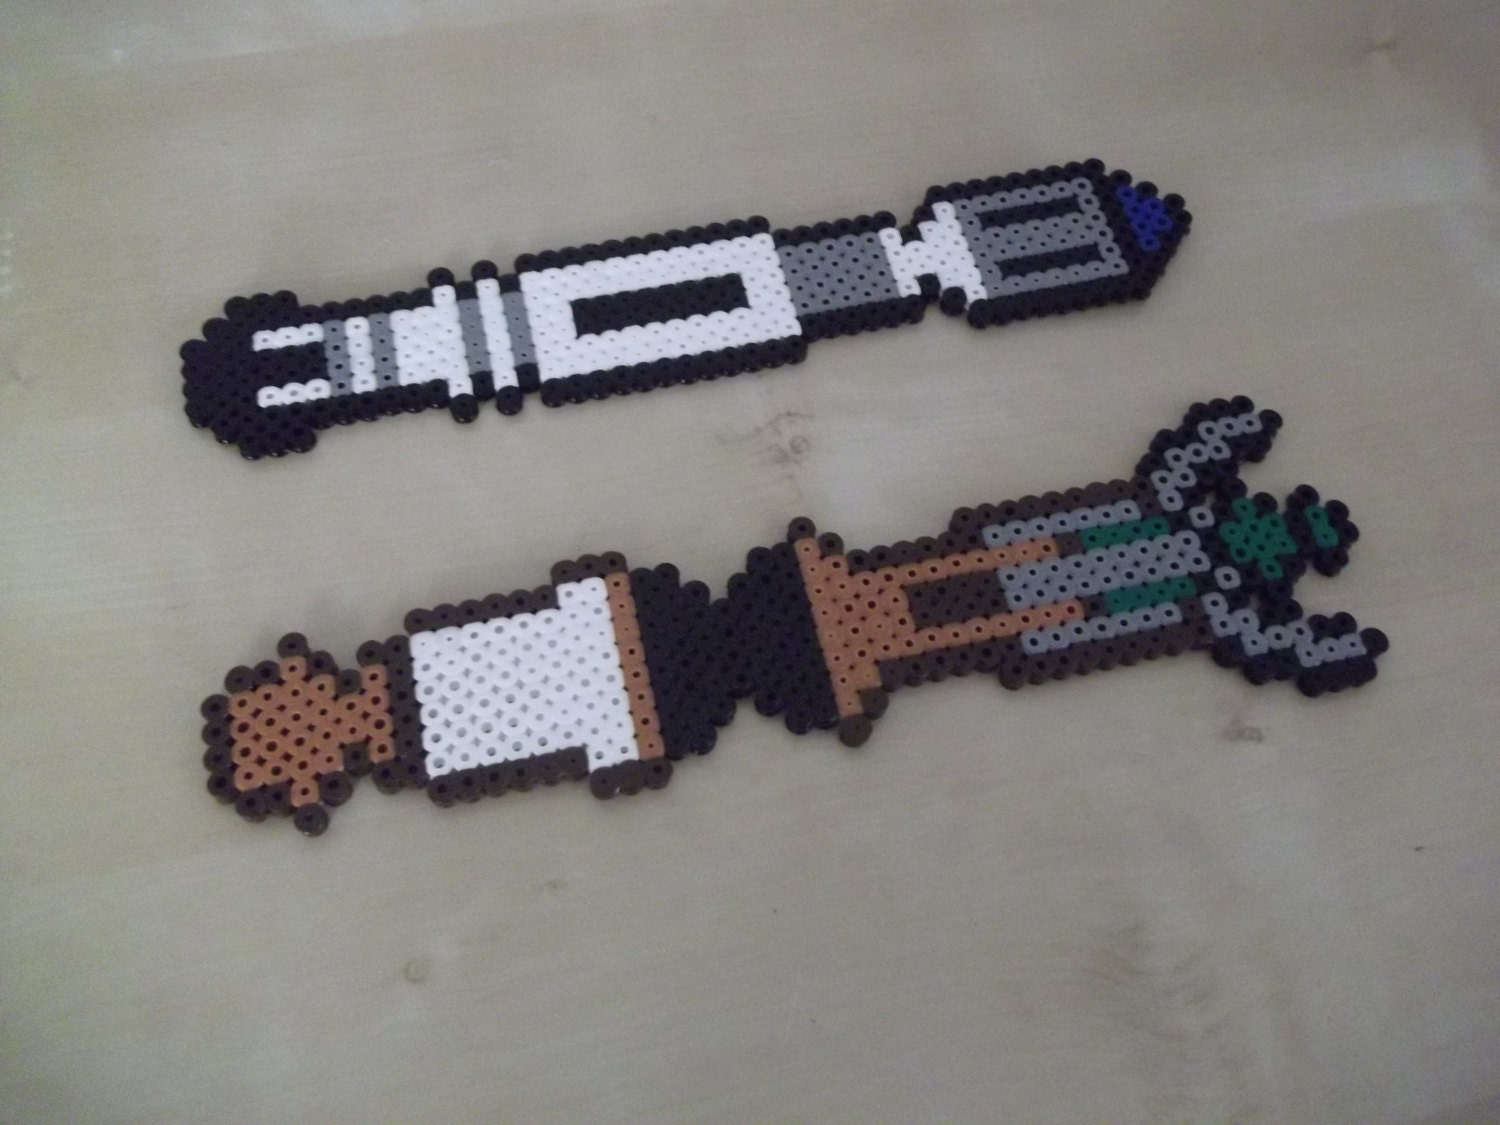 Popular items for sonic screwdriver on Etsy